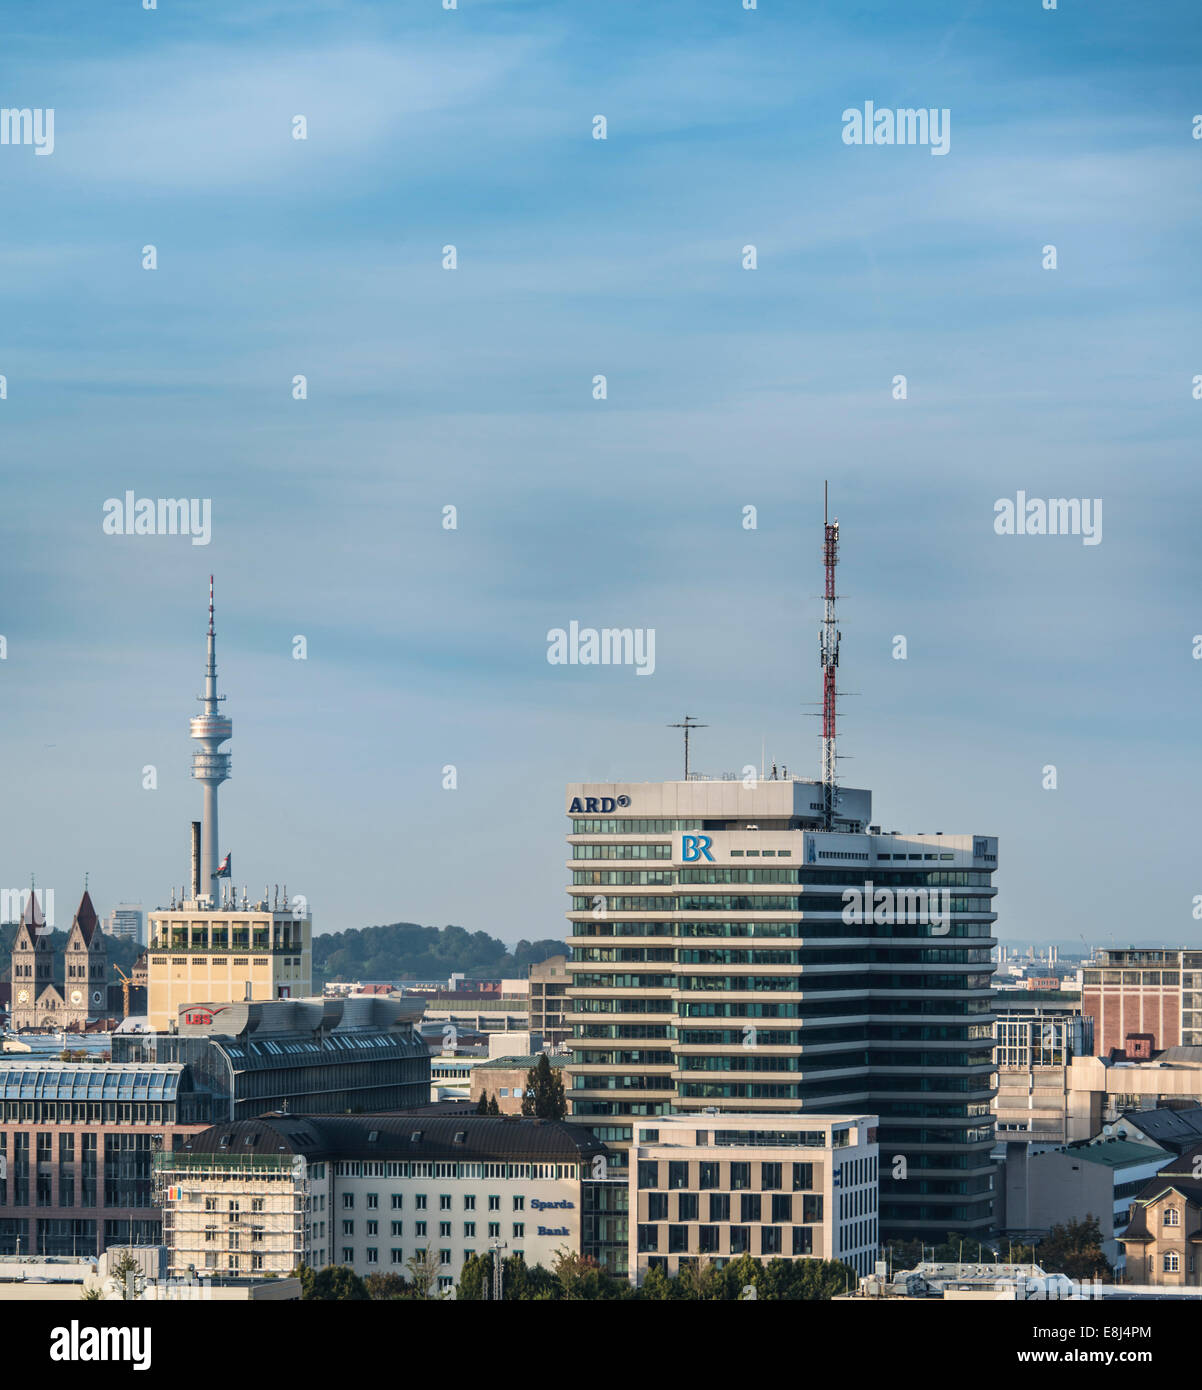 Building of the Bayerischer Rundfunk, Bavarian Broadcasting, BR and ARD with Olympic Tower, Munich, Upper Bavaria, - Stock Image